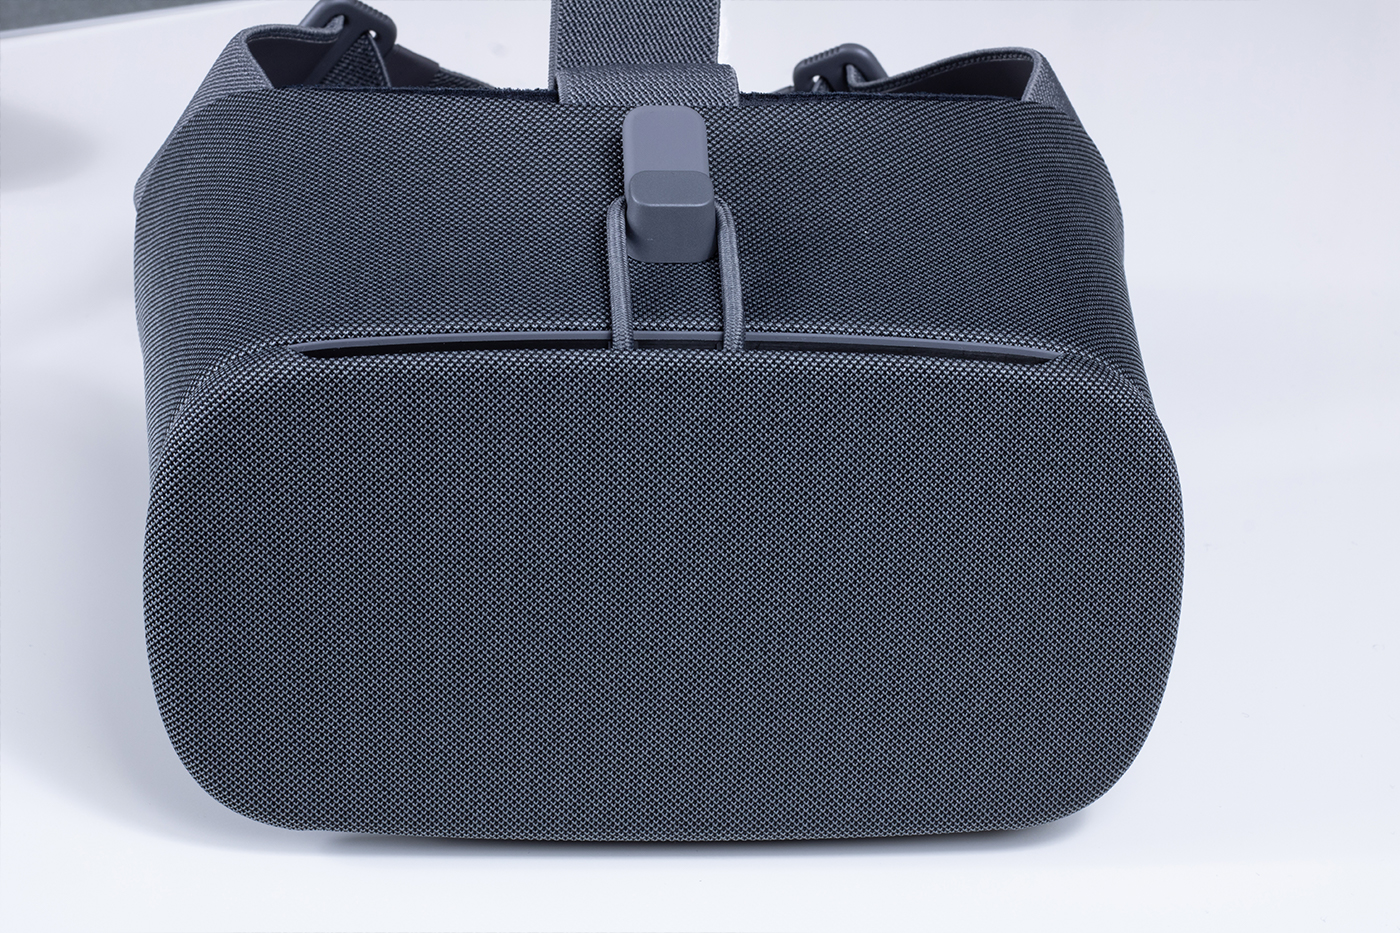 Google Daydream View Headset Front